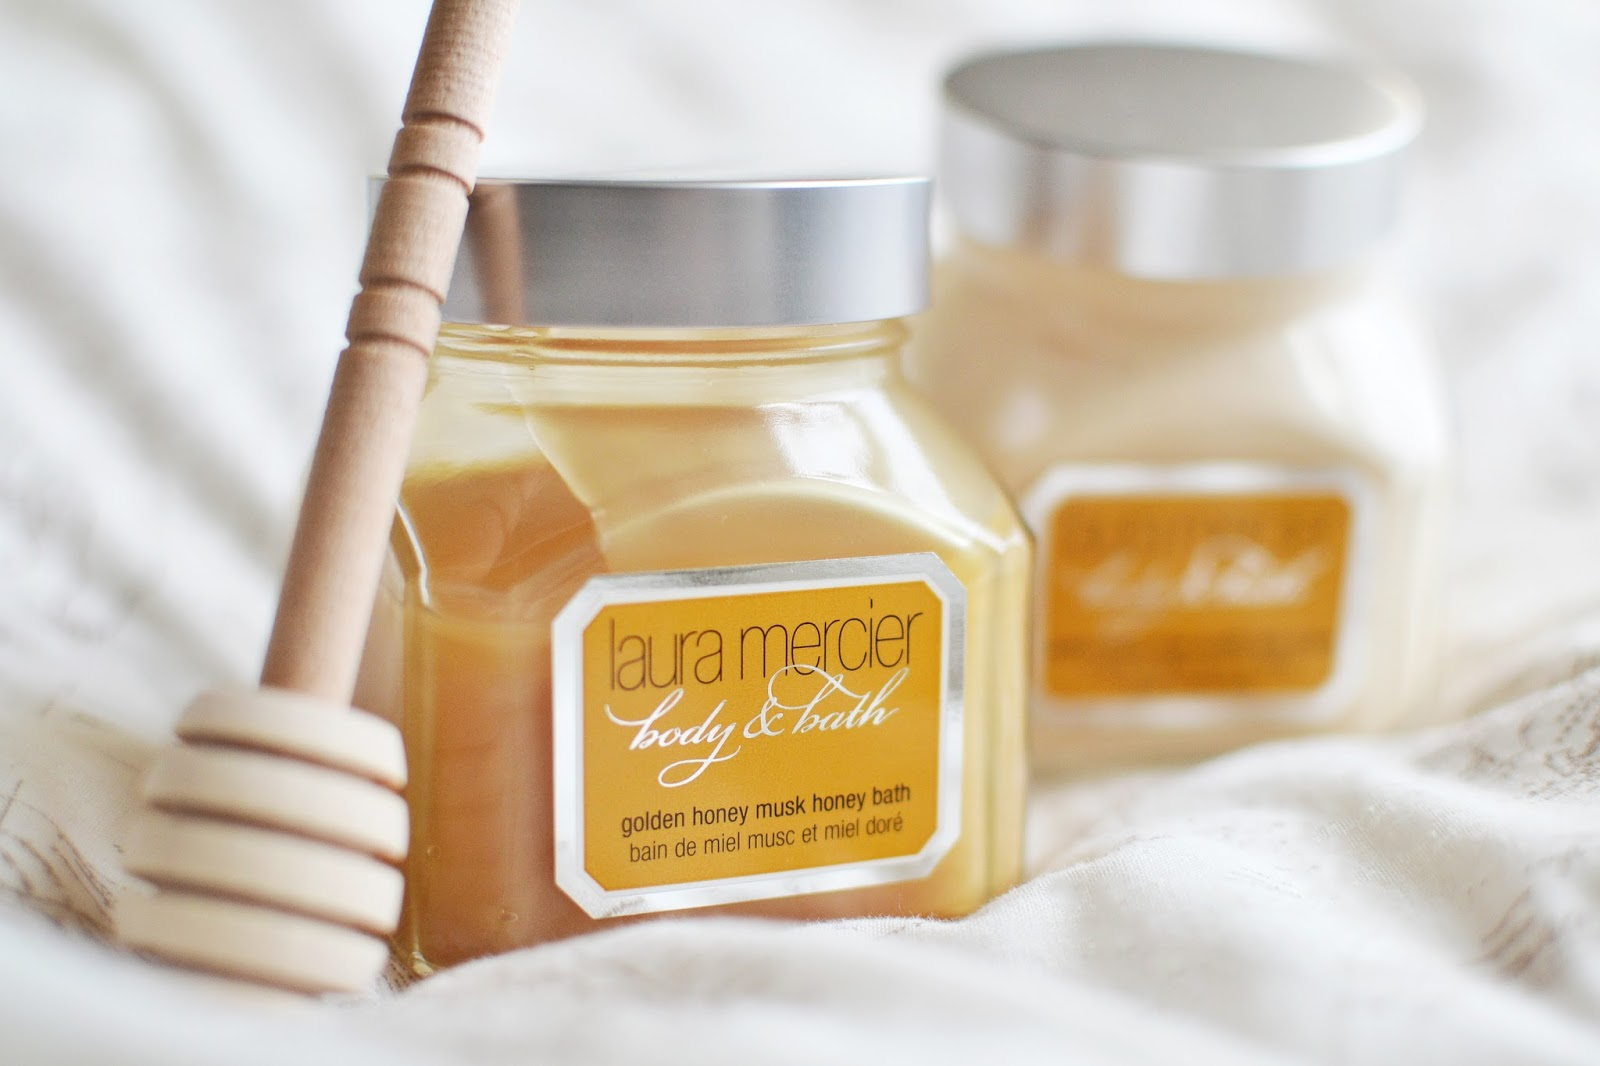 laura mercier honey bath, laura mercier honey bath review